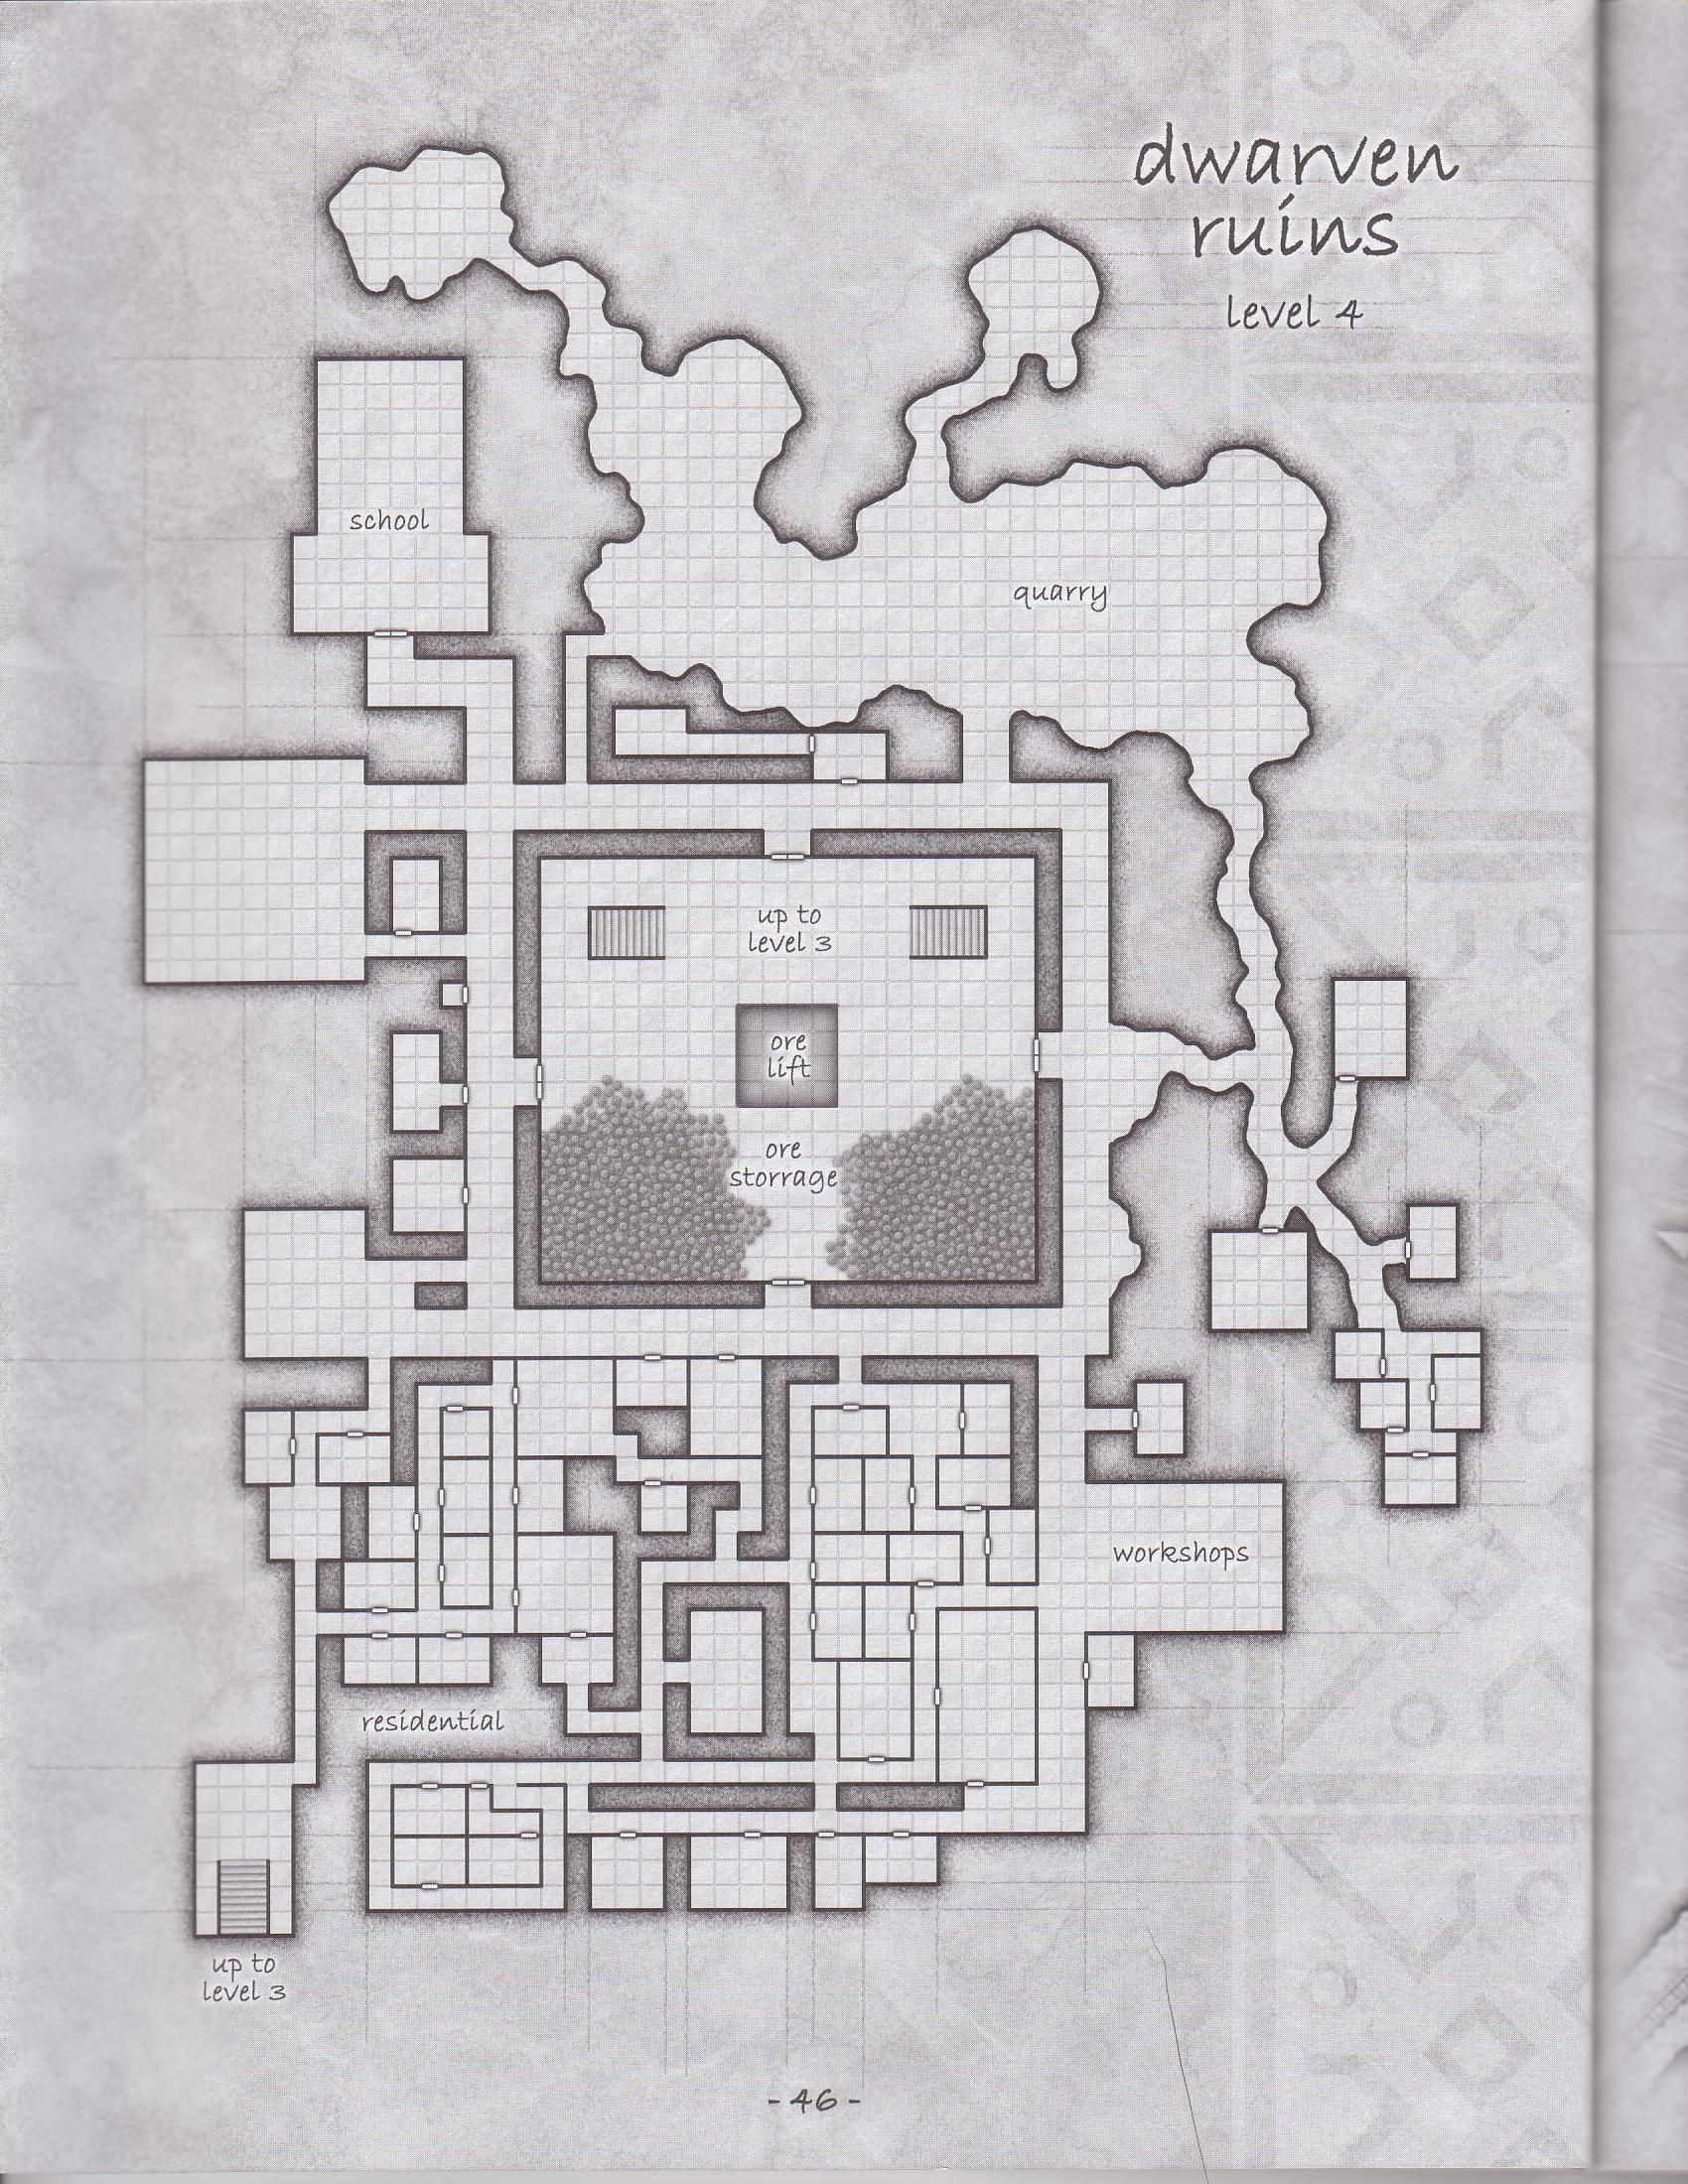 Its a dungeon 1 of 3 rpg maps pinterest rpg fantasy for Floor 2 dungeon map